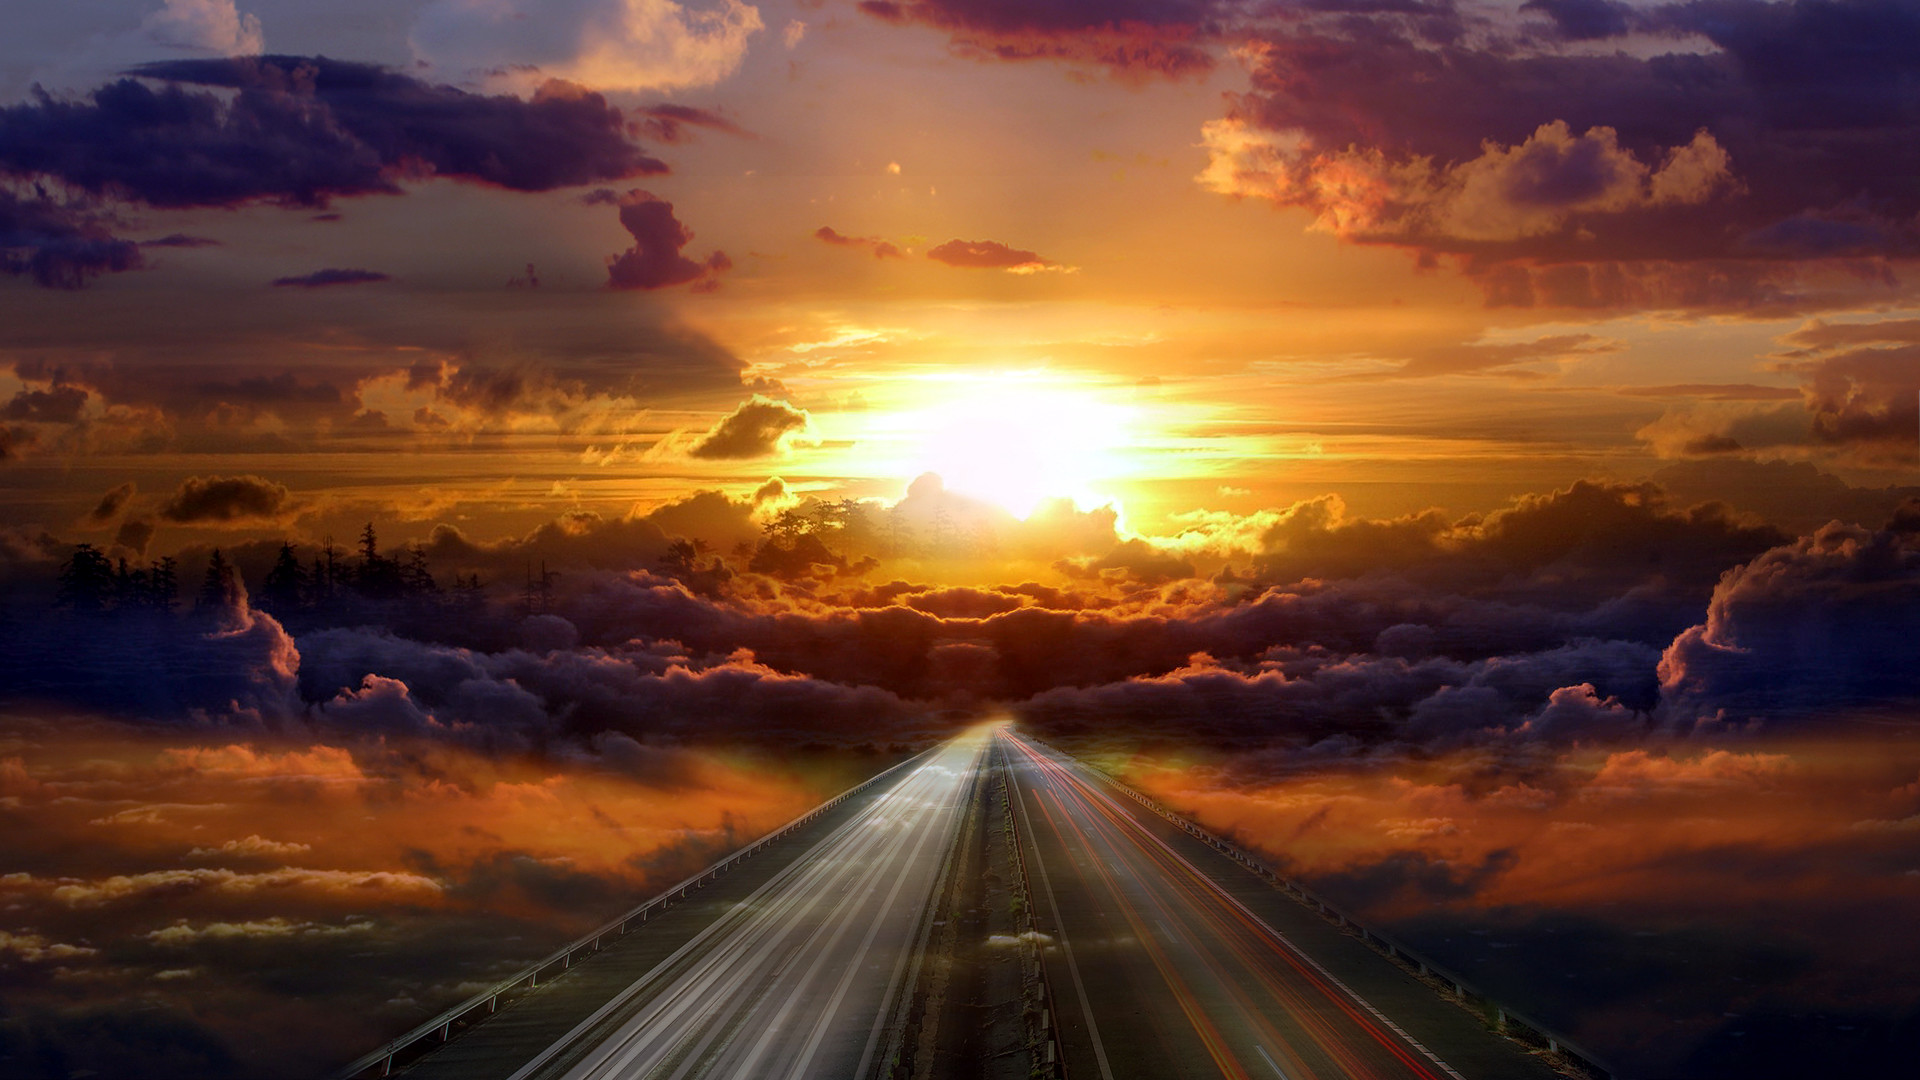 Heaven And Hell Hd Wallpaper 64 Images